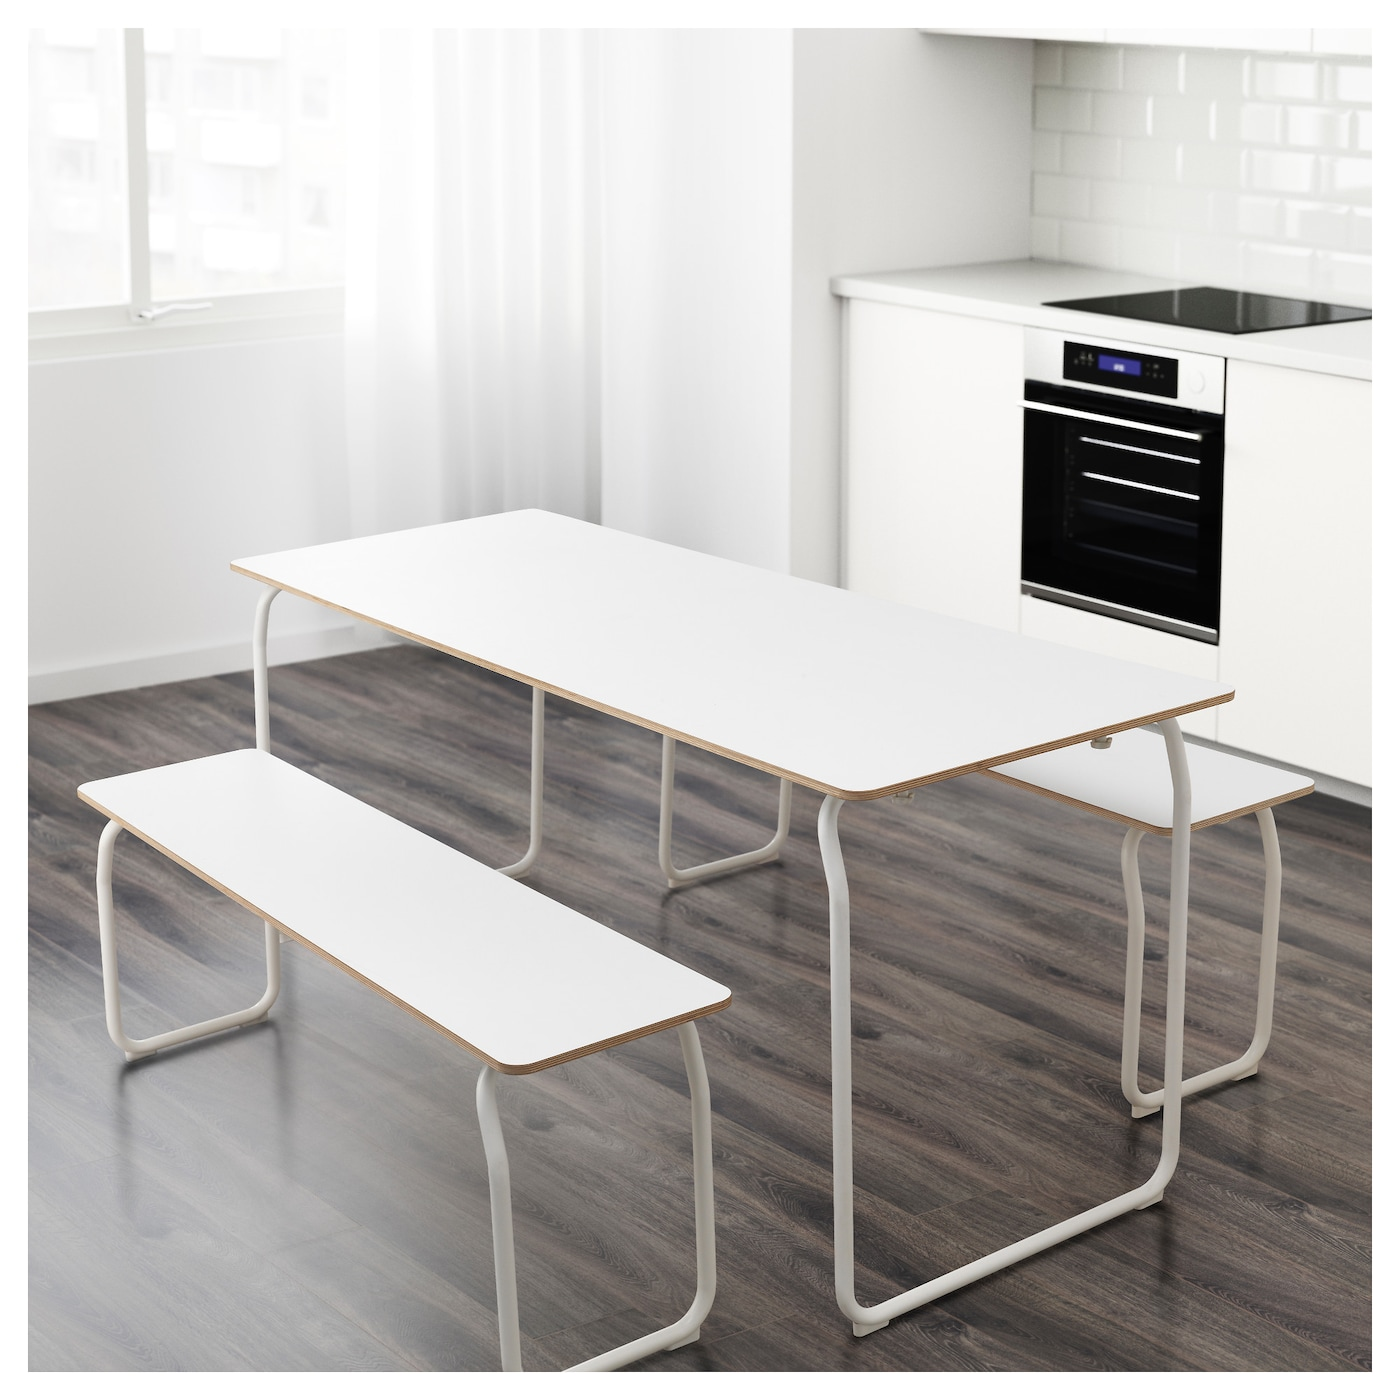 ikea ps 2014 table 2 benches in outdoor white foldable ikea. Black Bedroom Furniture Sets. Home Design Ideas